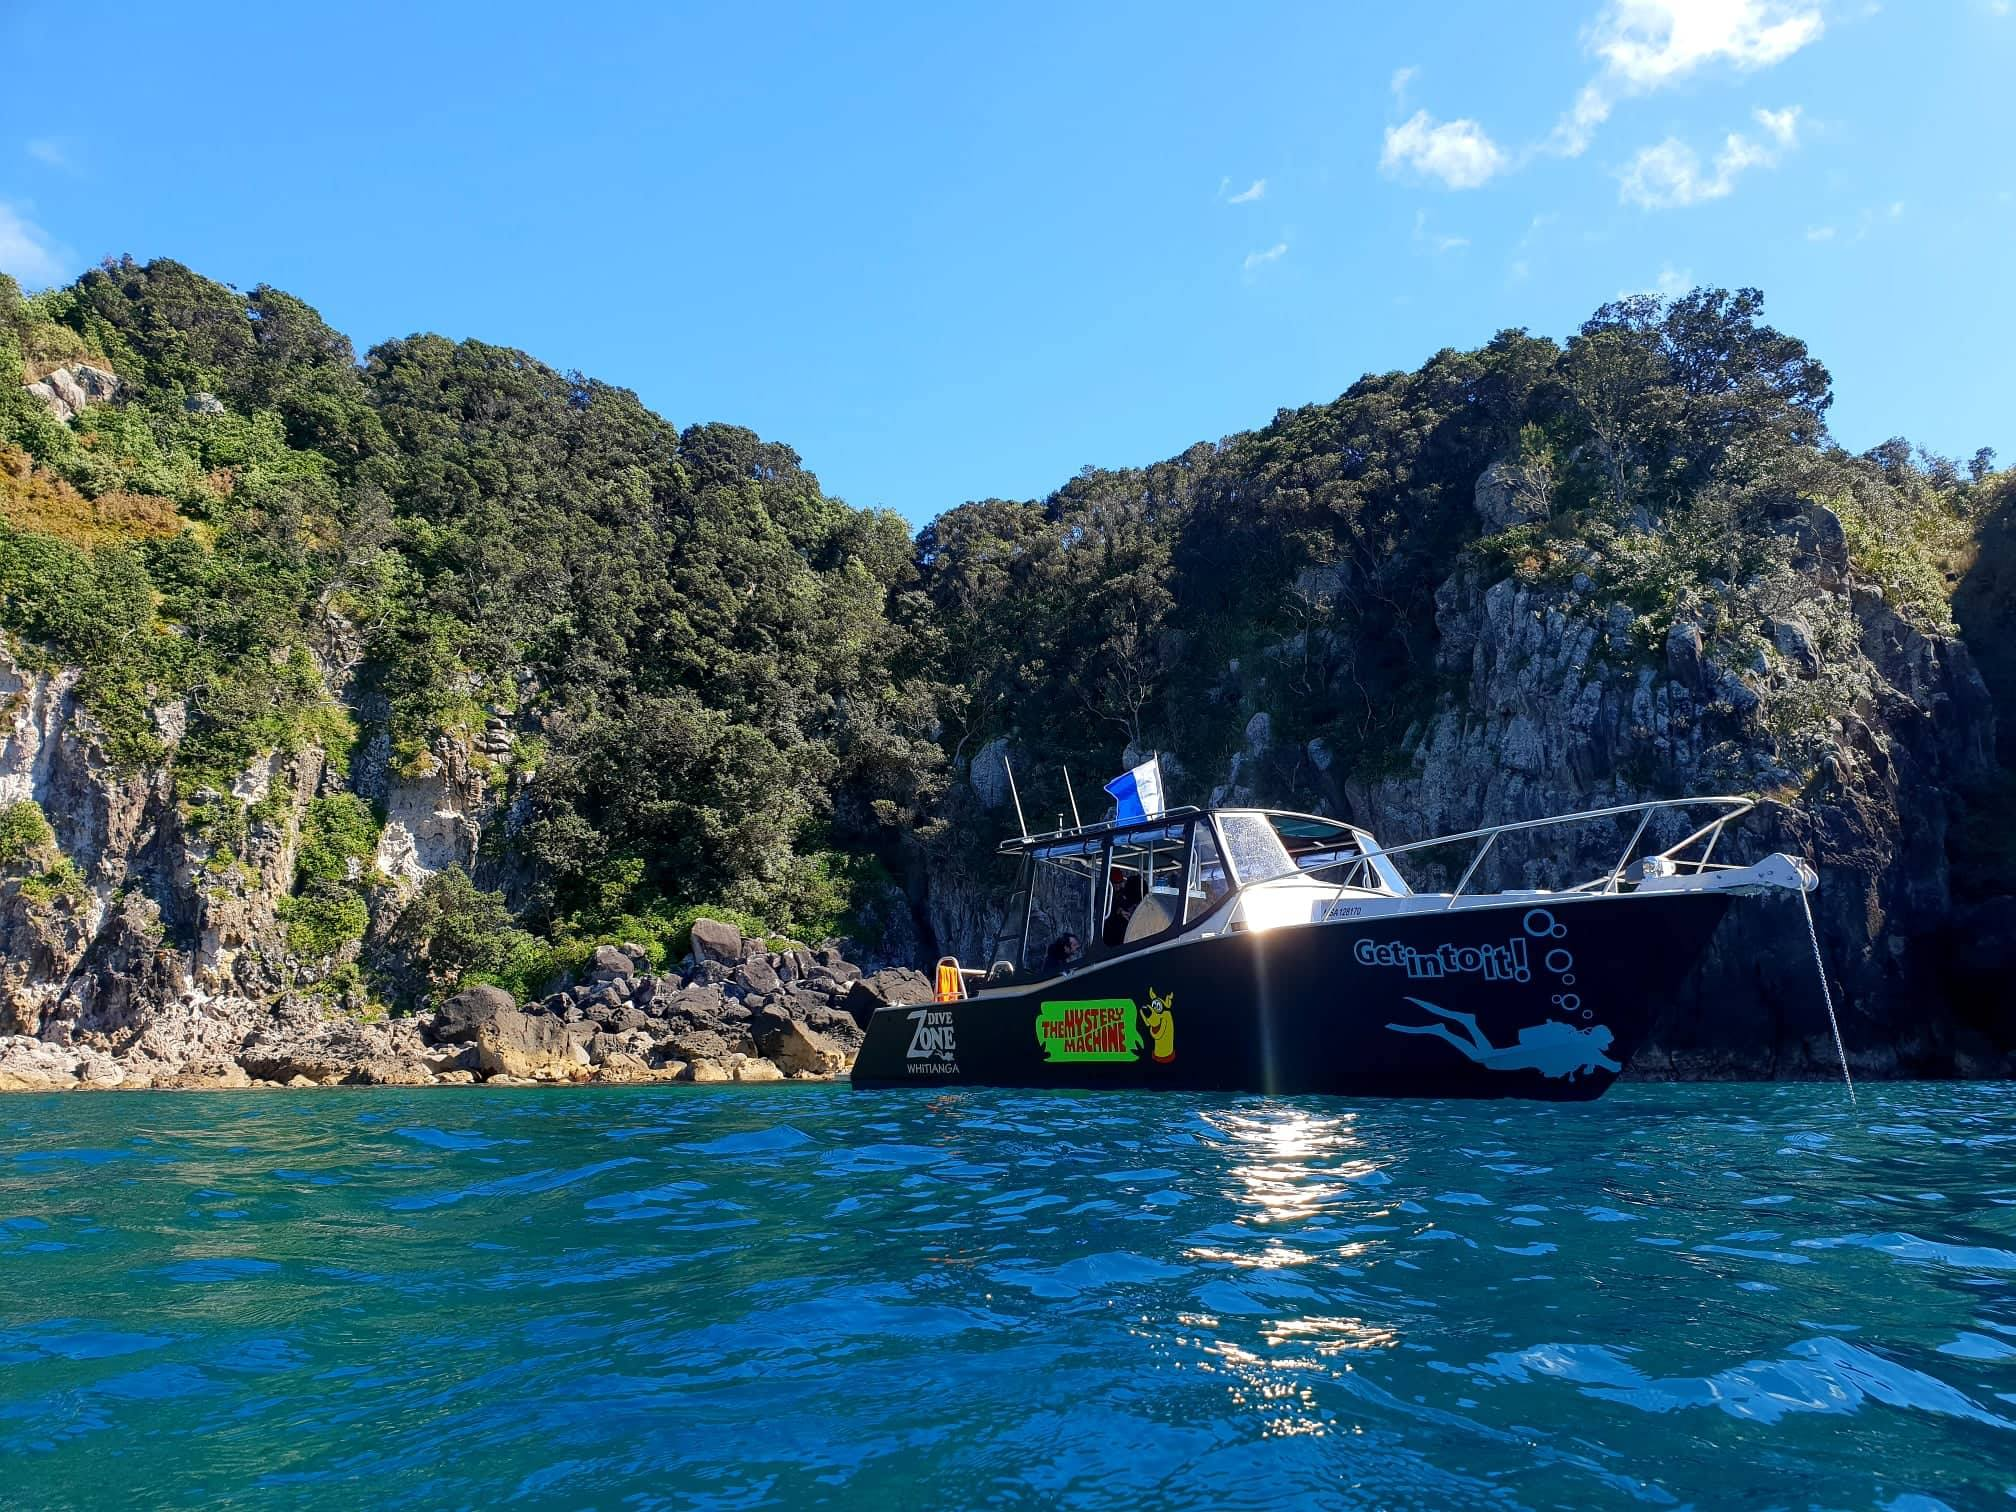 Dive Zone Whitianga - Get into it! The Coromandel's scuba diving experts, with a huge full service PADI 5 star dive shop, PADI scuba diving training courses and daily dive trips to some of the Coromandel's best dive sites. Check out more